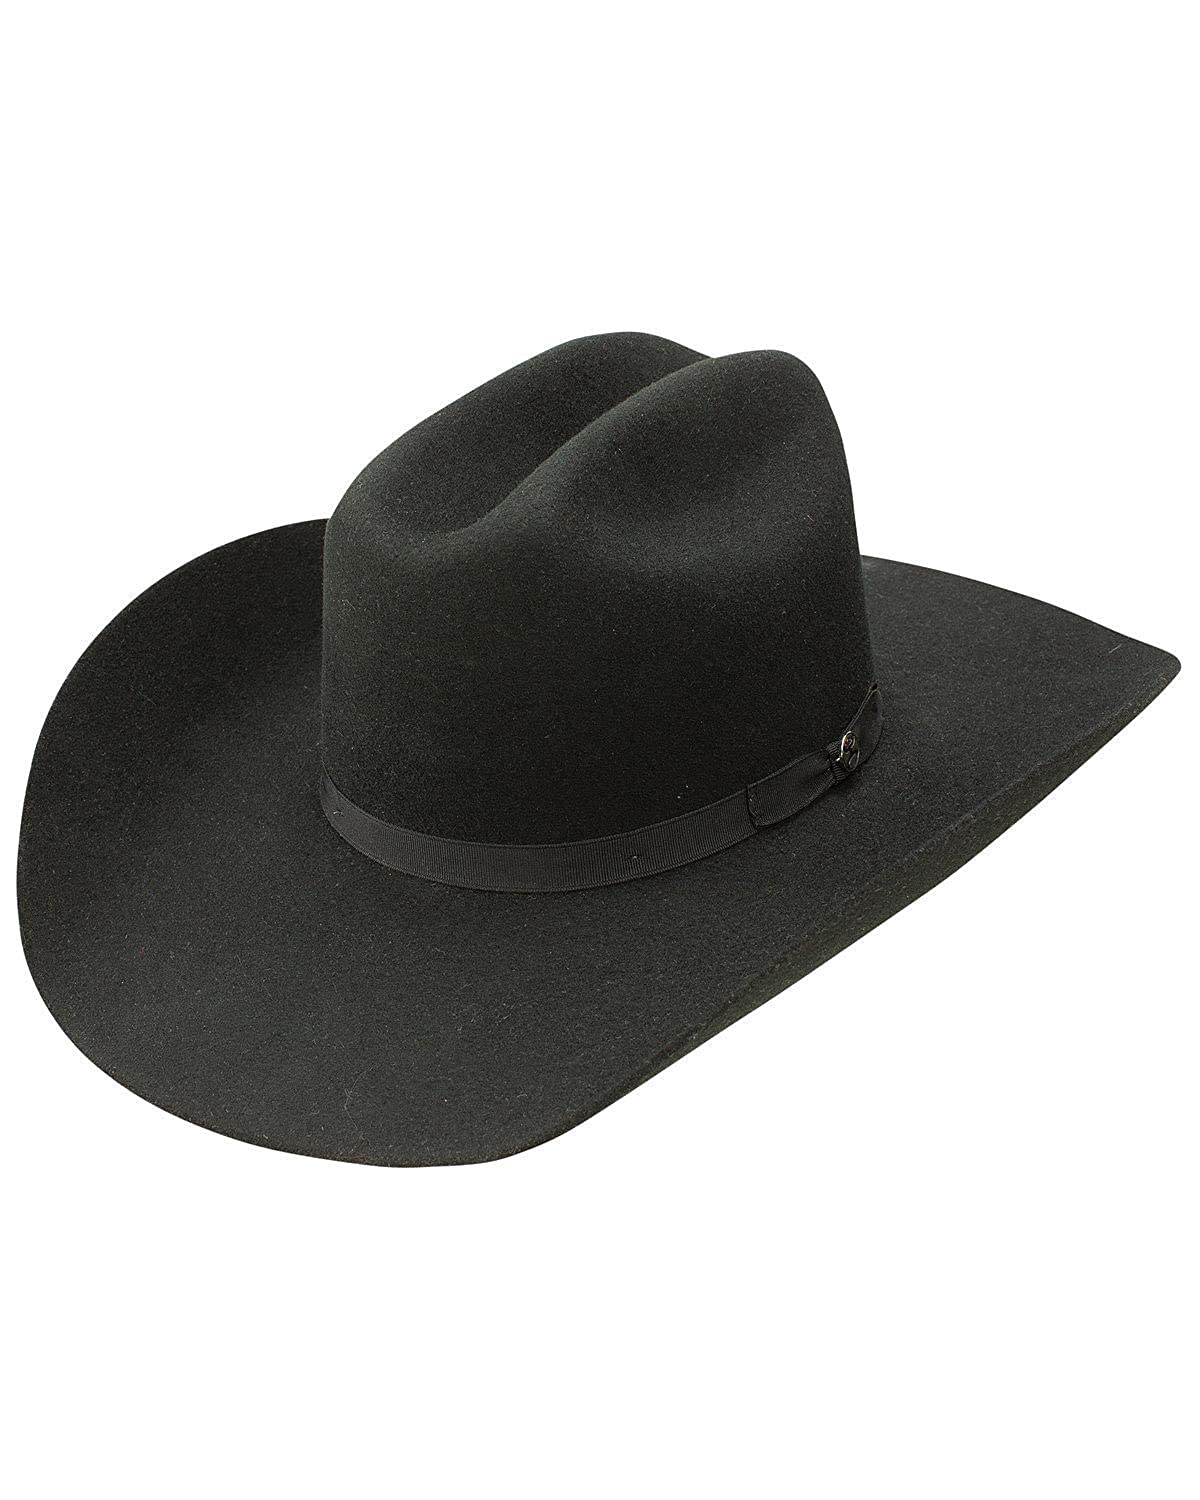 14693f0c8d2 Resistol Men s Hooey Maverick 4X Wool Felt Cowboy Hat Black 7 1 4 at Amazon  Men s Clothing store